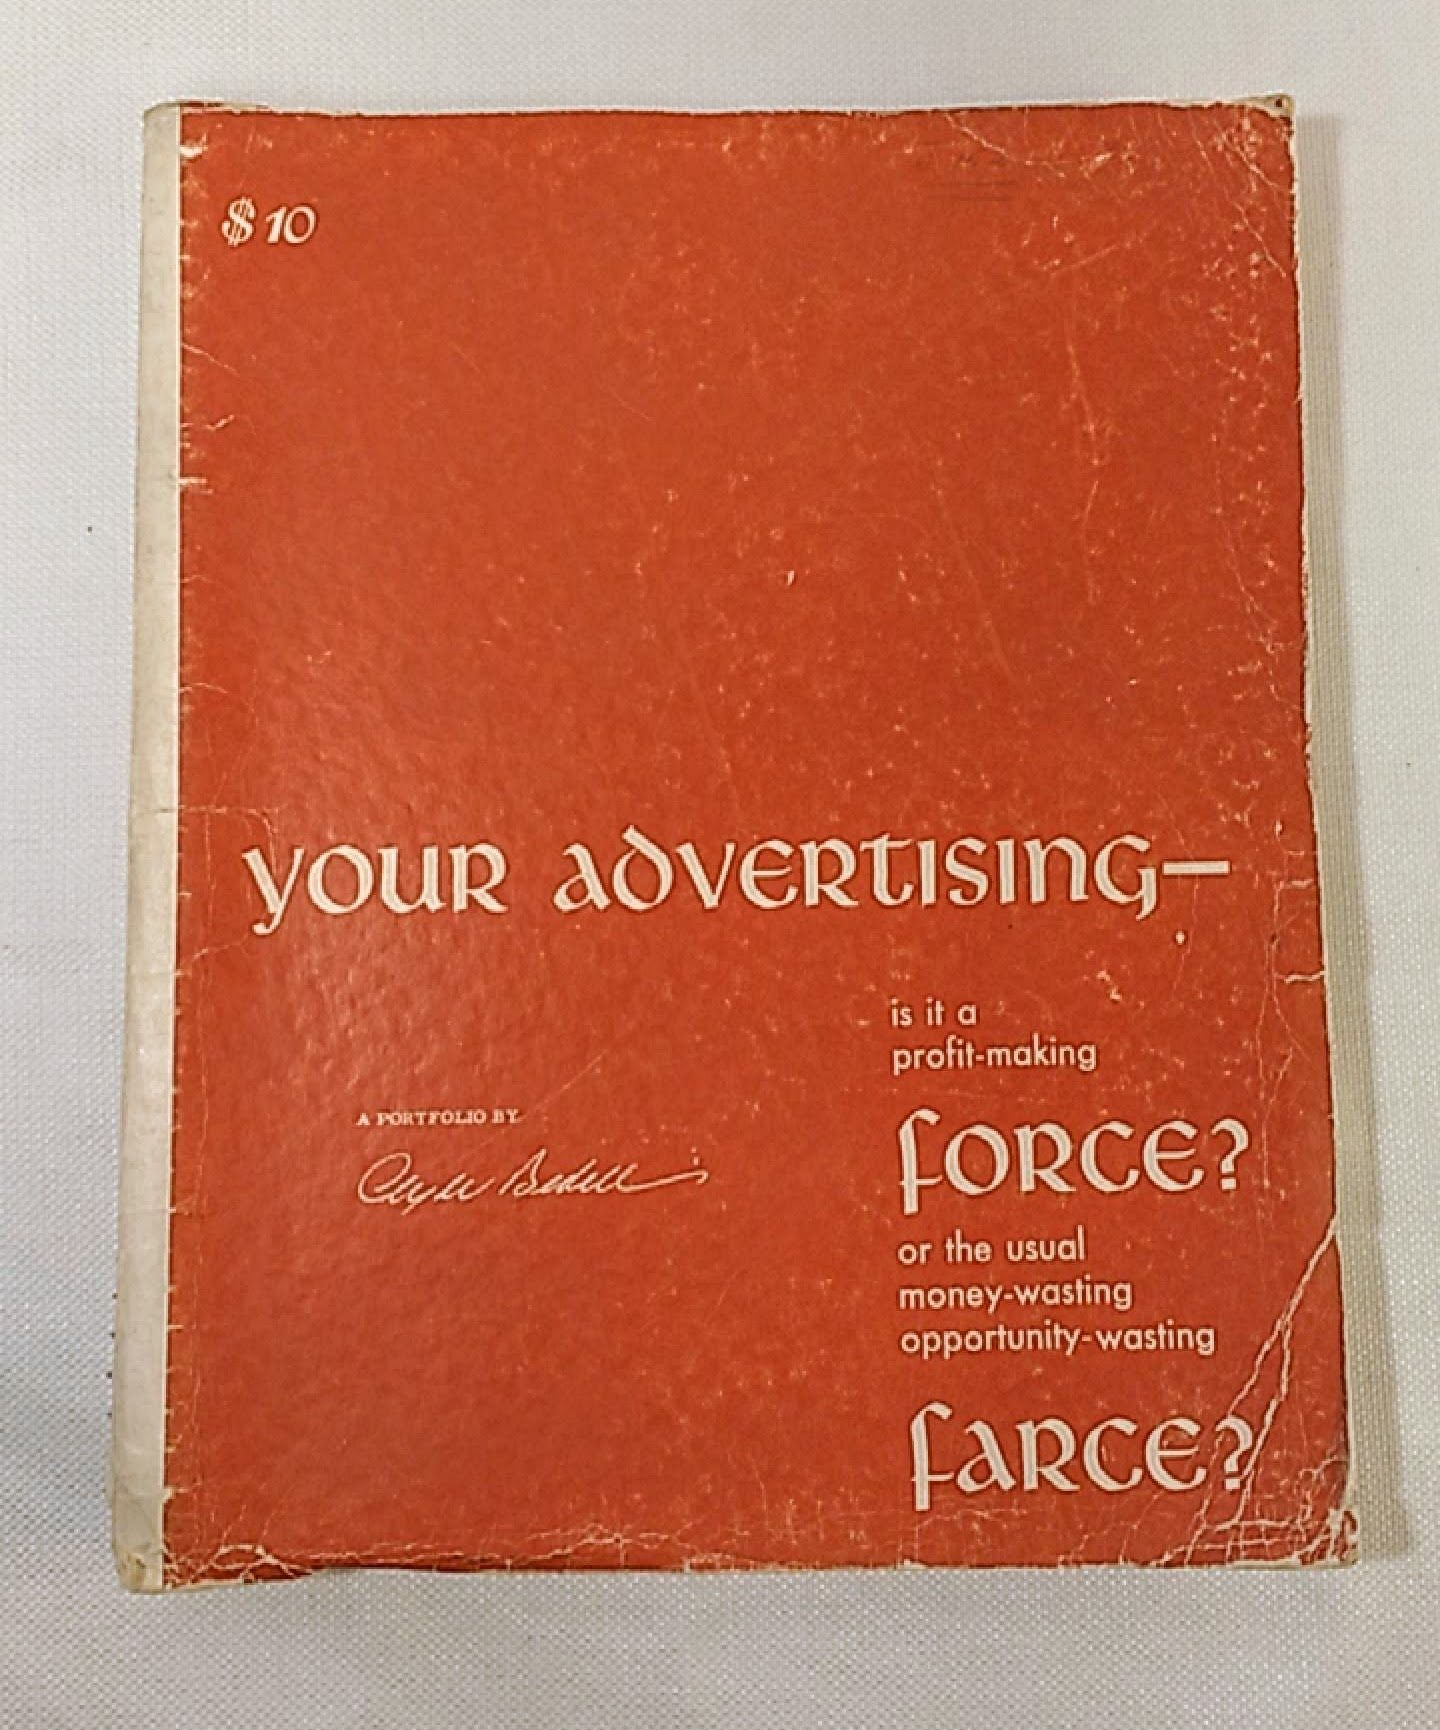 Your Advertising - is it a profit-making force? or the usual money-wasting opportunity-wasting farce? A Portfolio by Clyde Bedell, Bedell, Clyde